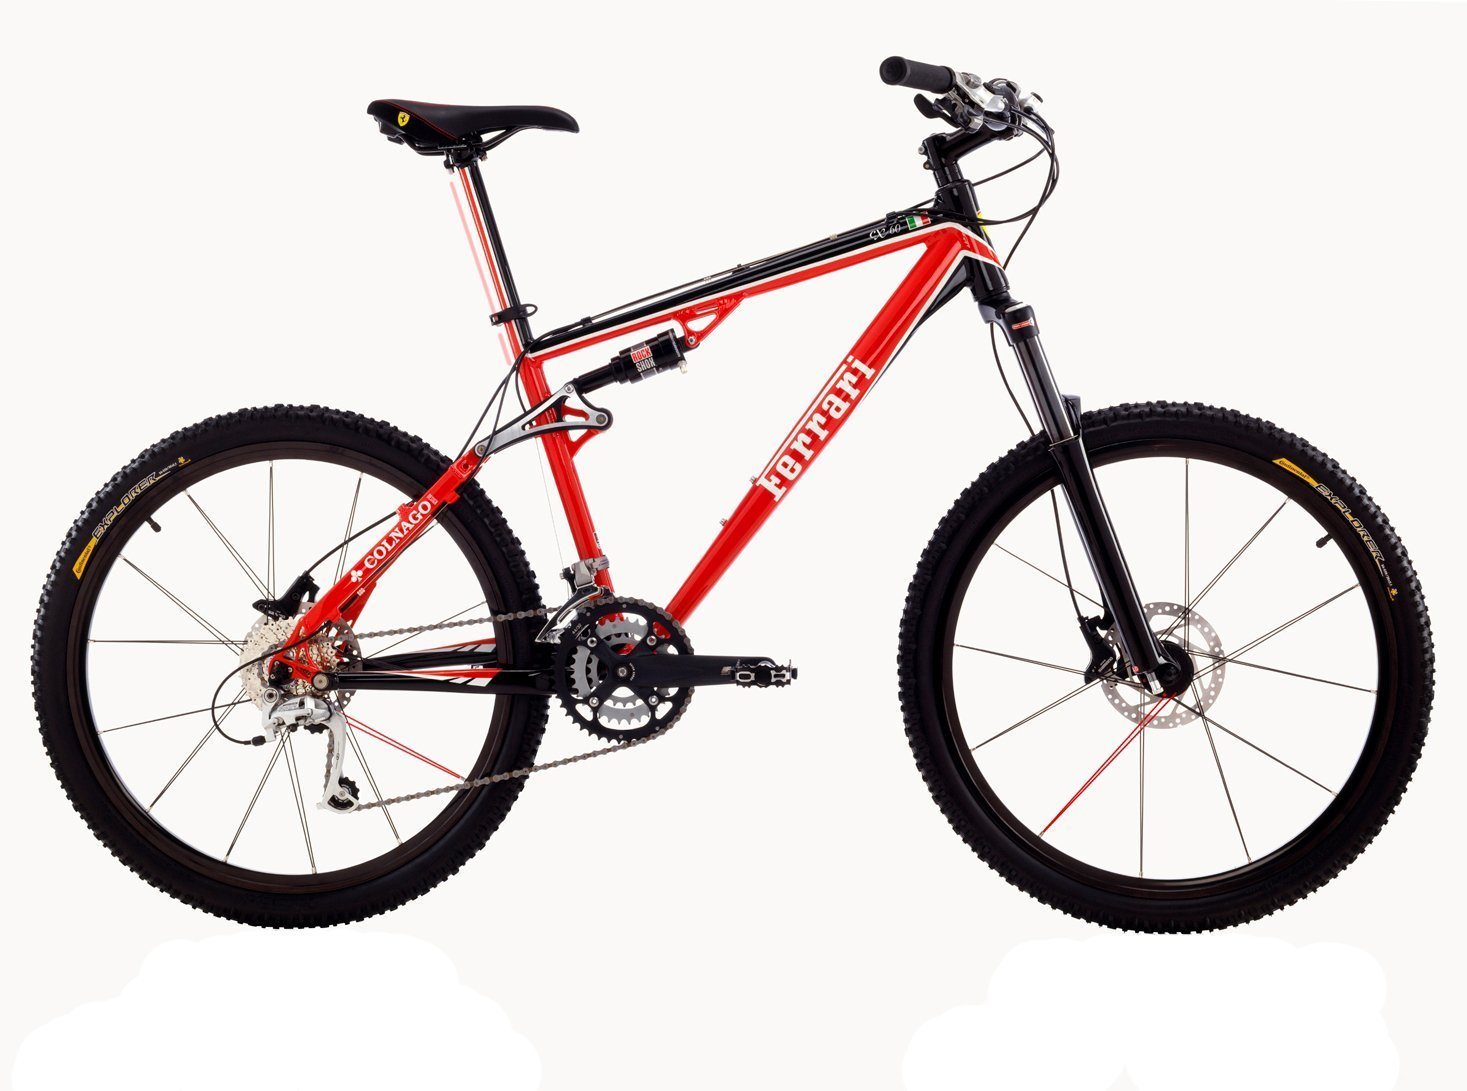 Ferrari Cx  Full Suspension Mountain Bike Small Amazon Co Uk Sports Outdoors